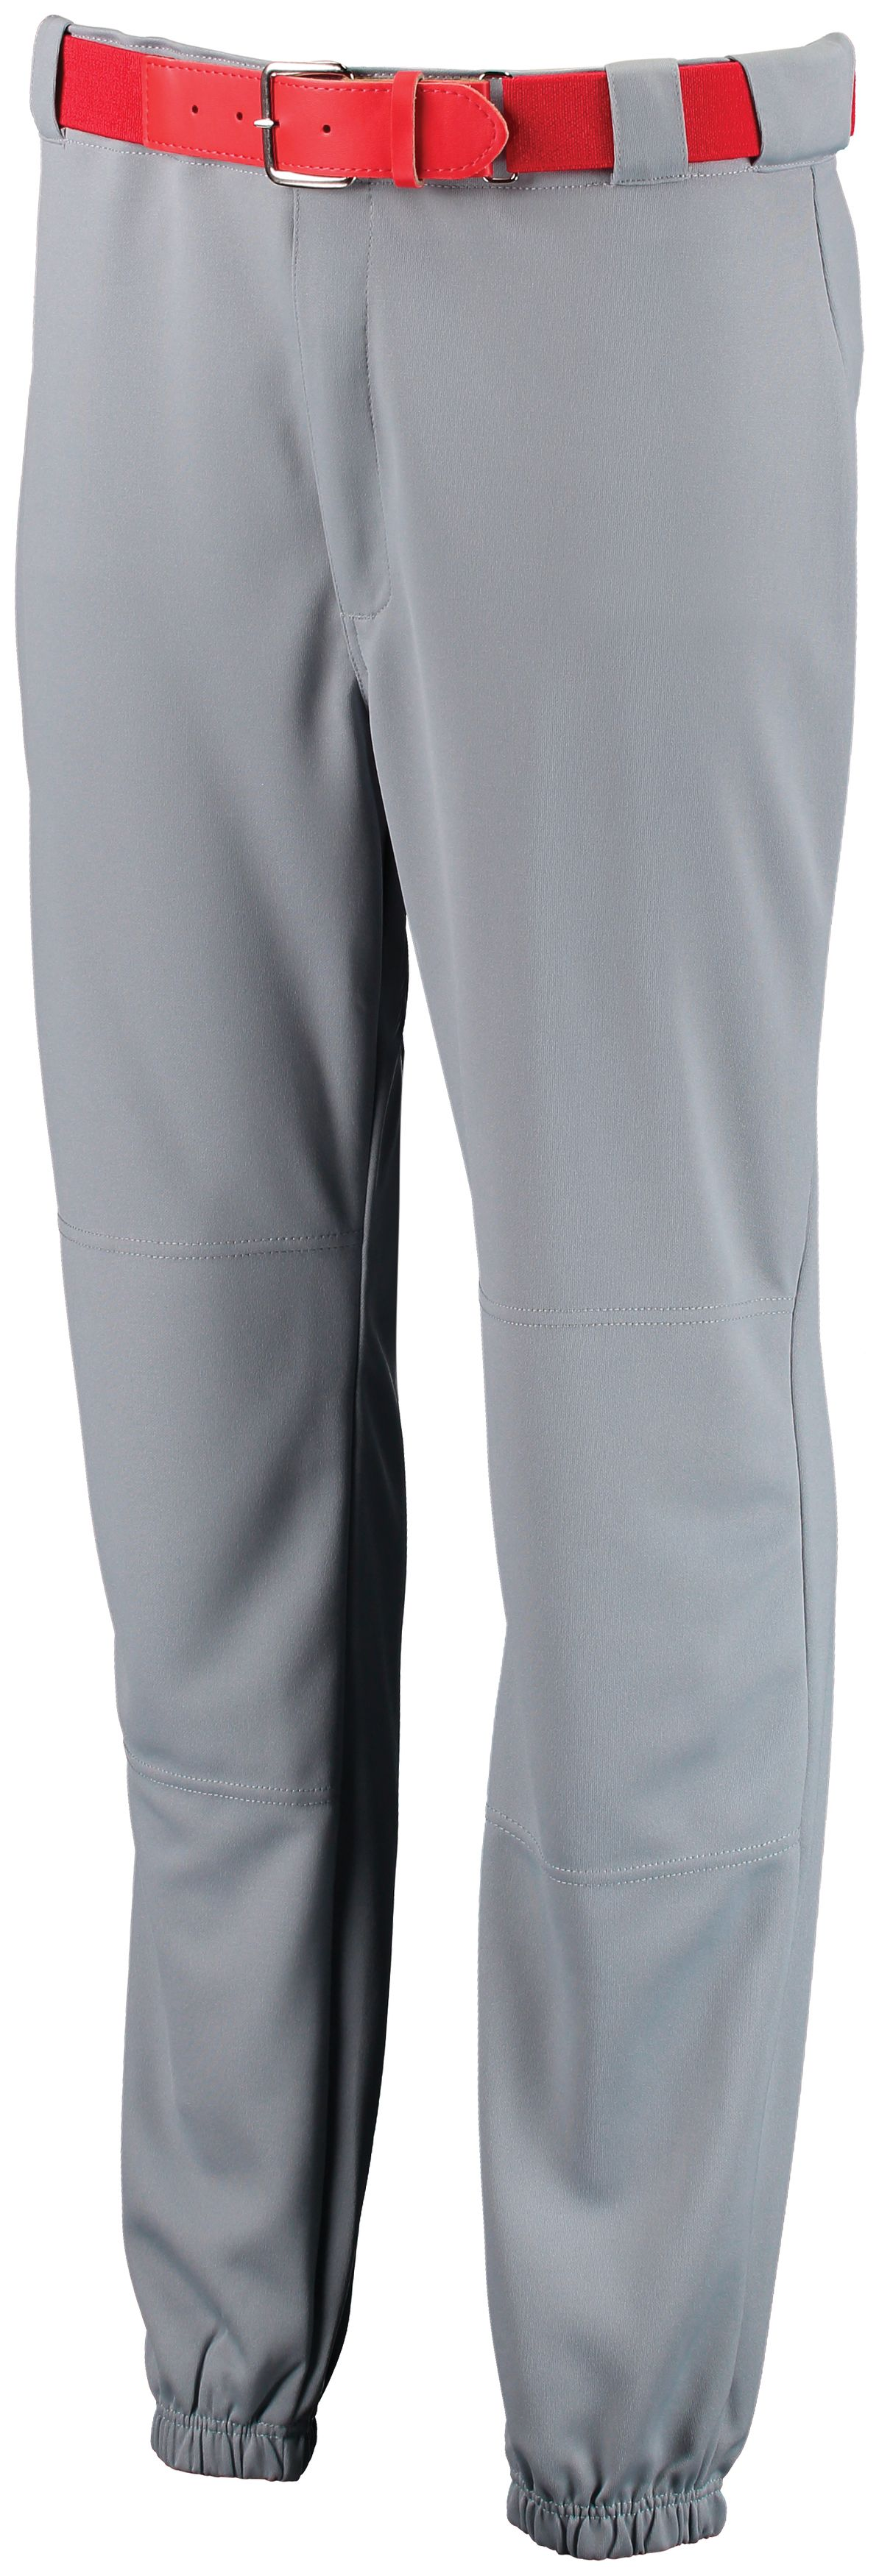 Baseball Game Pant - Baseball Grey